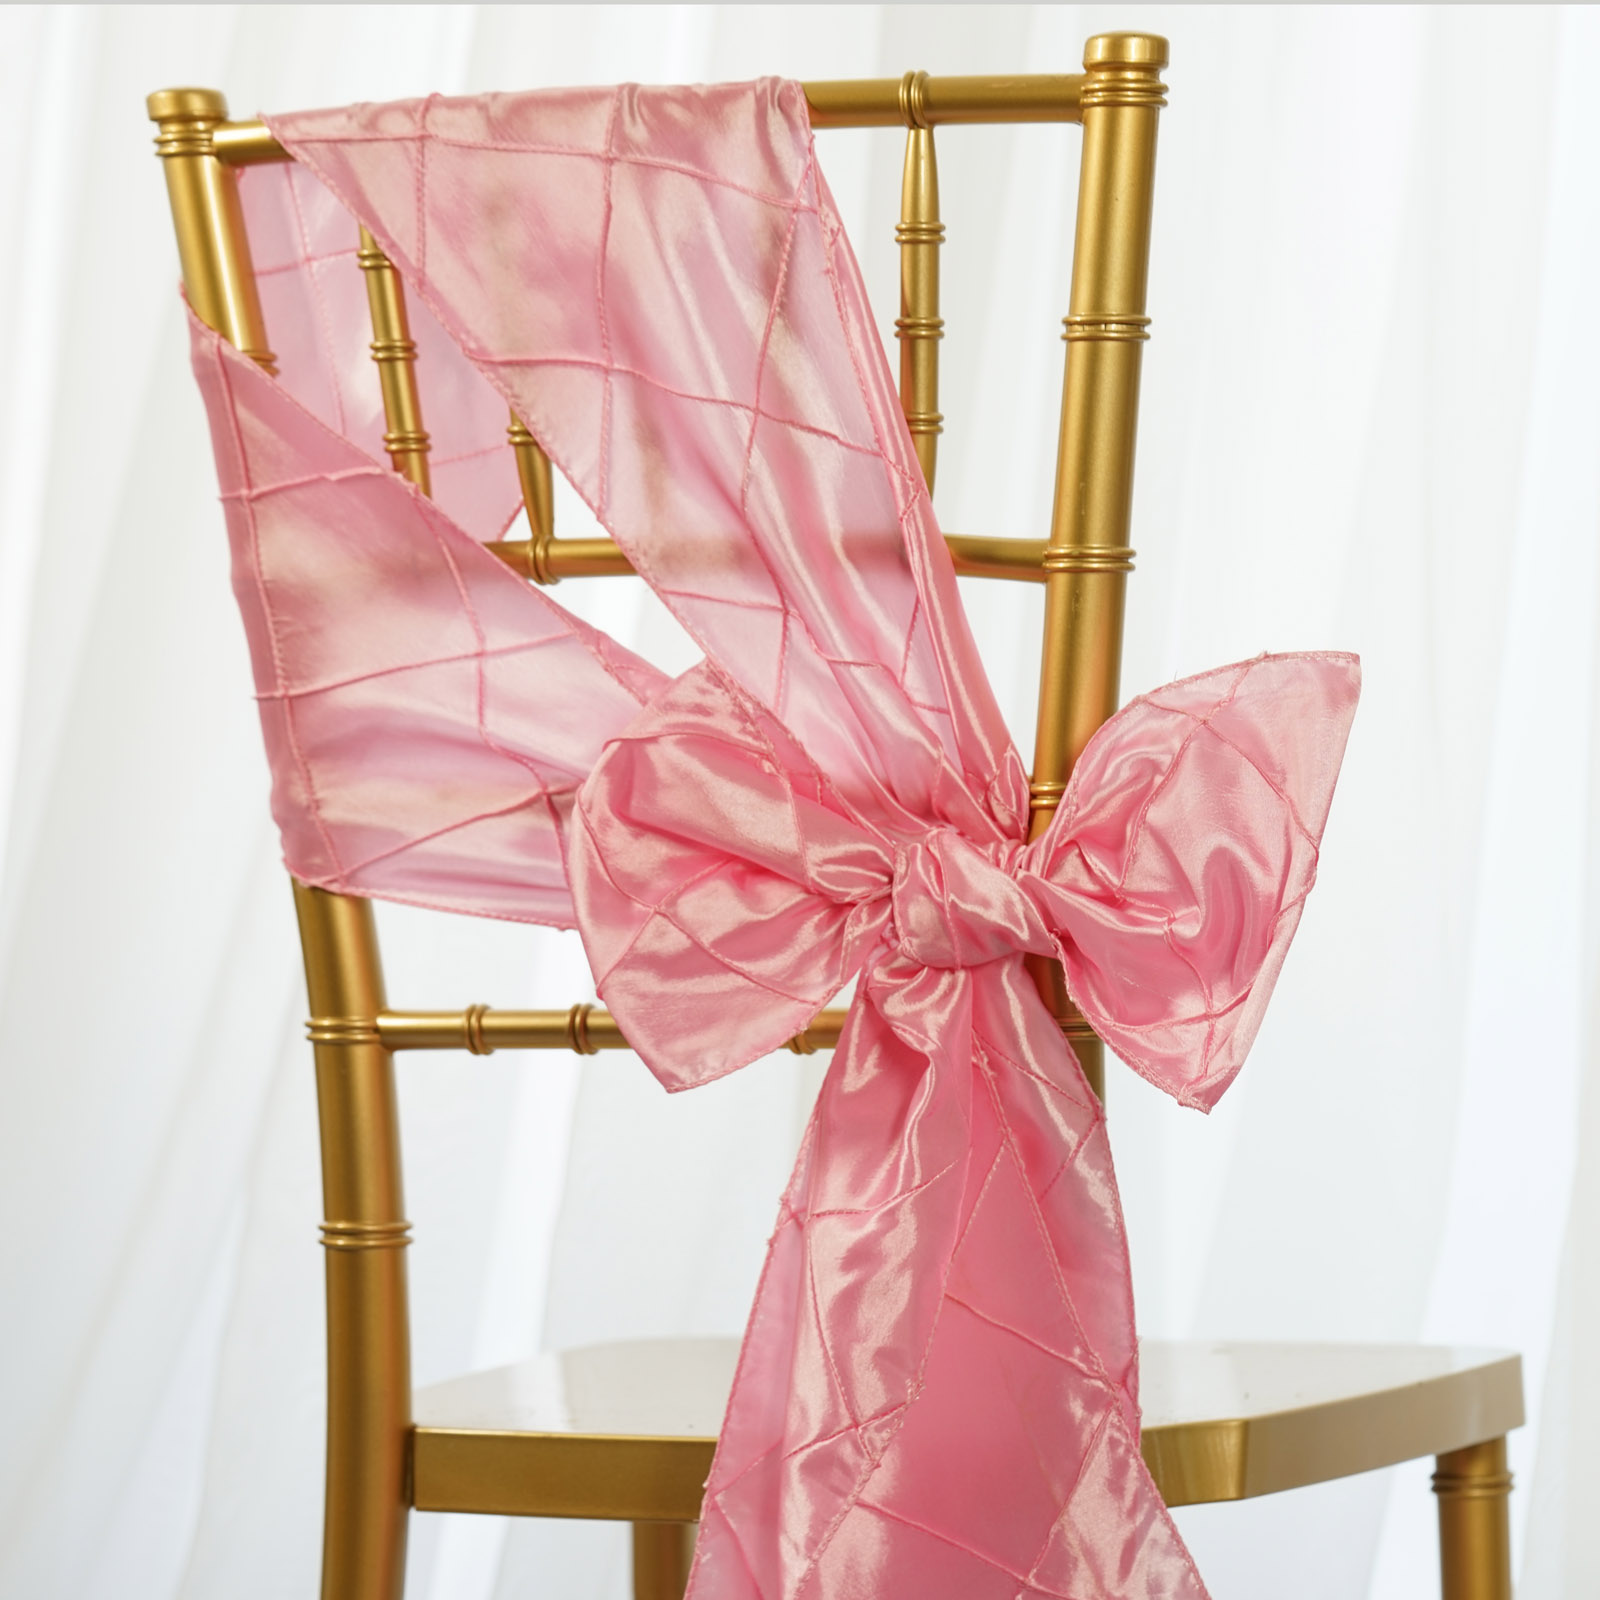 chair covers wedding buy mid century modern office pintuck sashes bows ties banquet reception